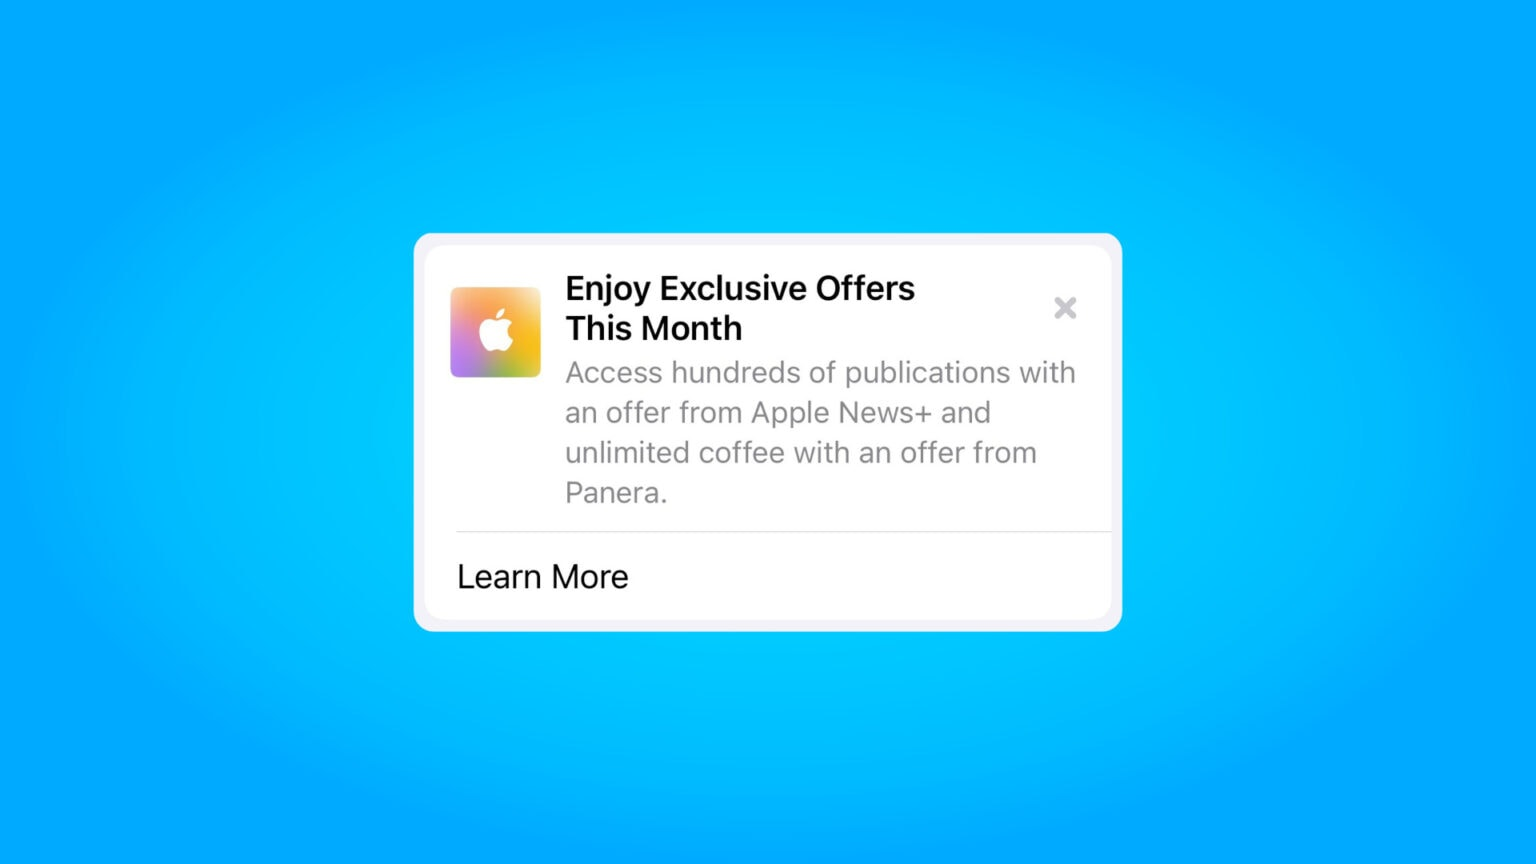 Apple Card gets exclusive offers